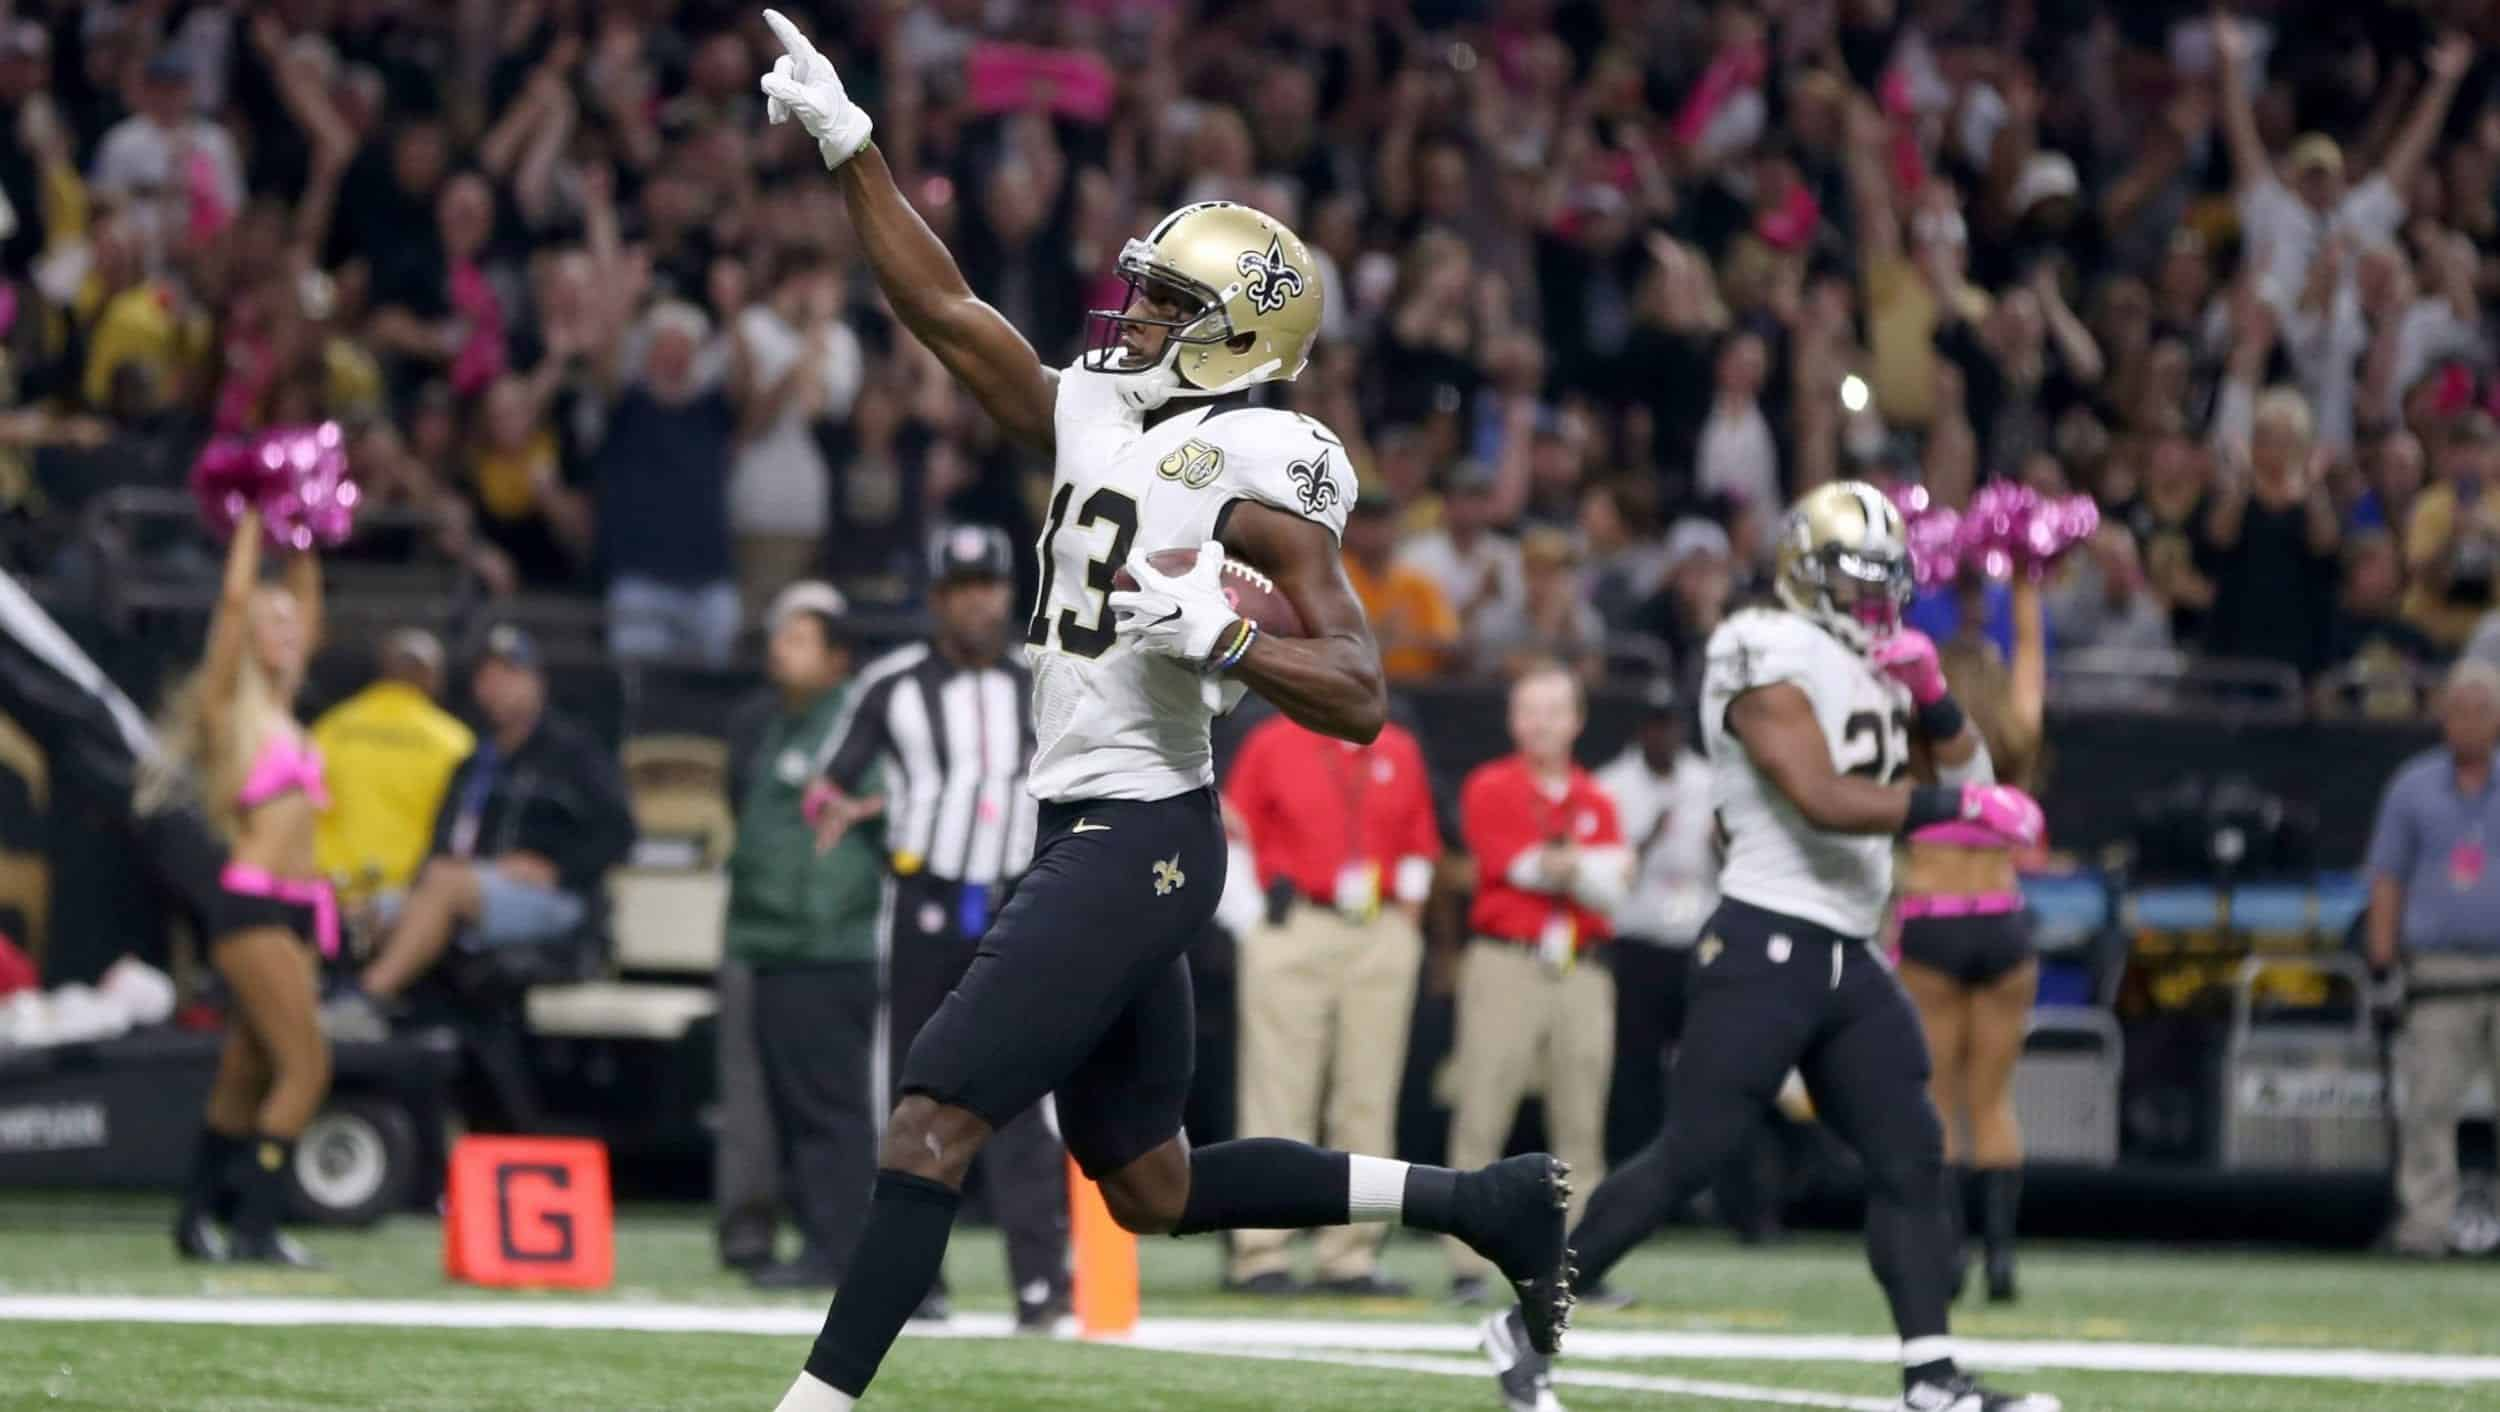 For NFL wide receivers, athleticism doesn't necessarily lead to value